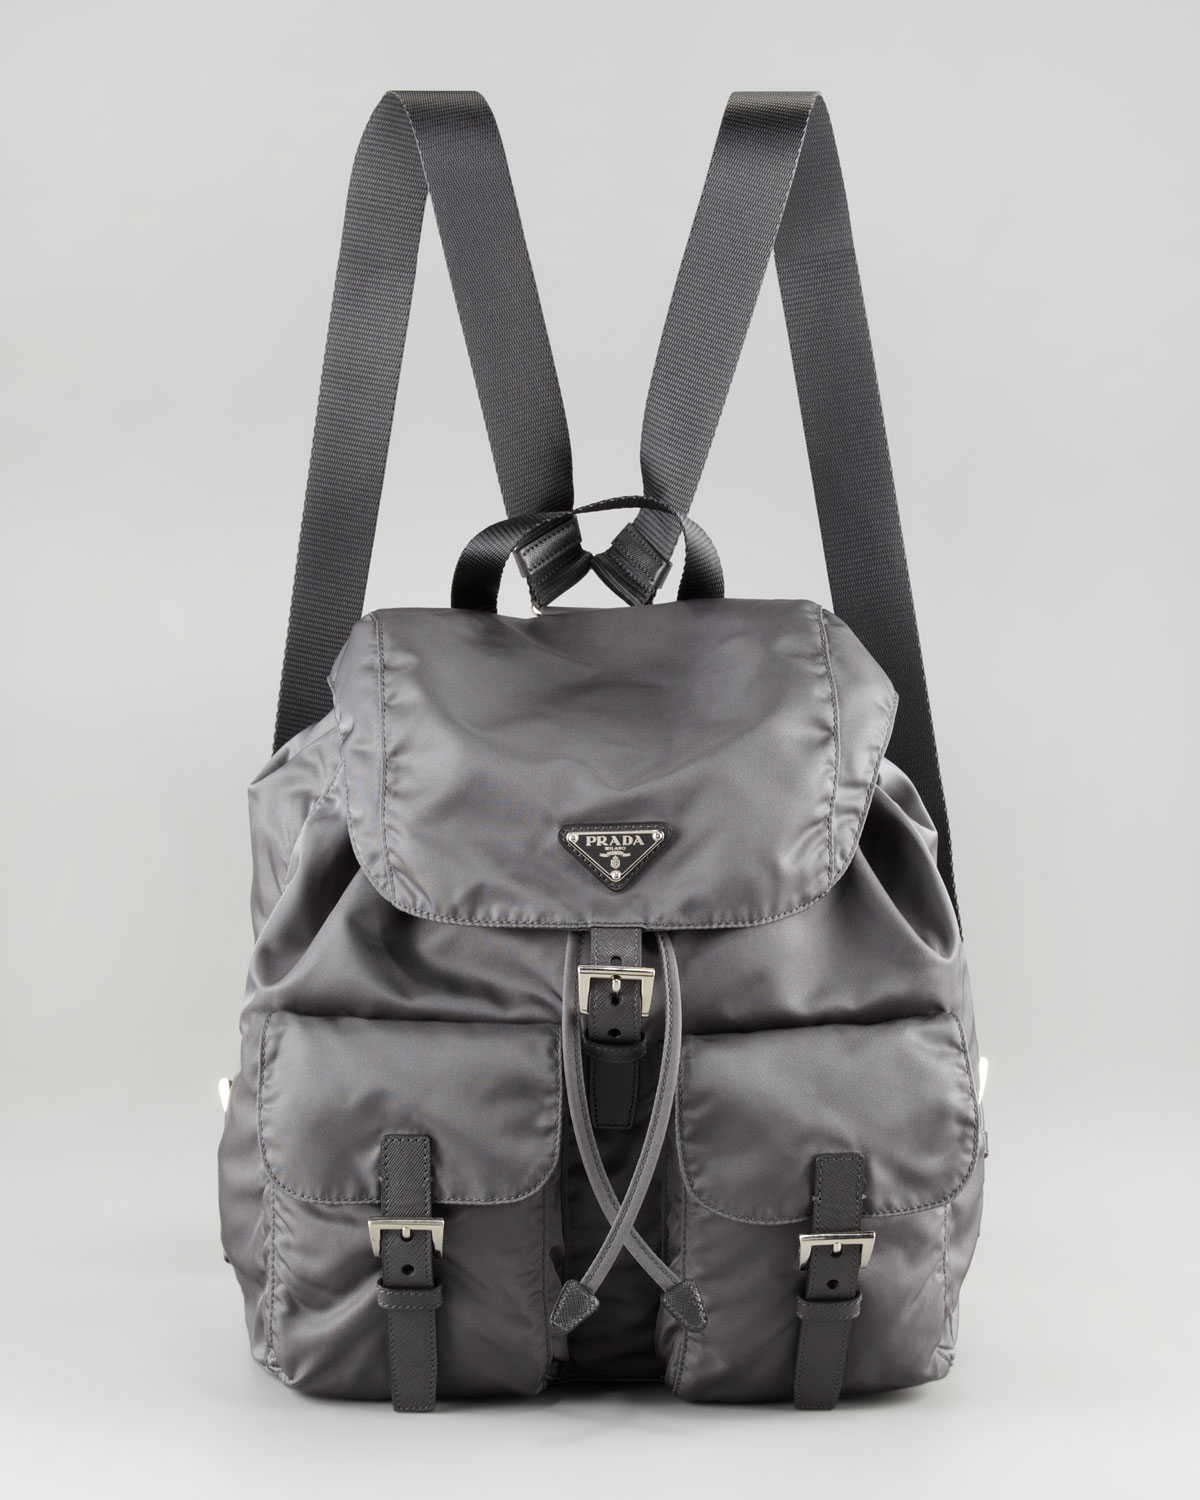 664f82b4b18561 ... cheapest lyst prada vela nylon backpack in gray bf849 e505b